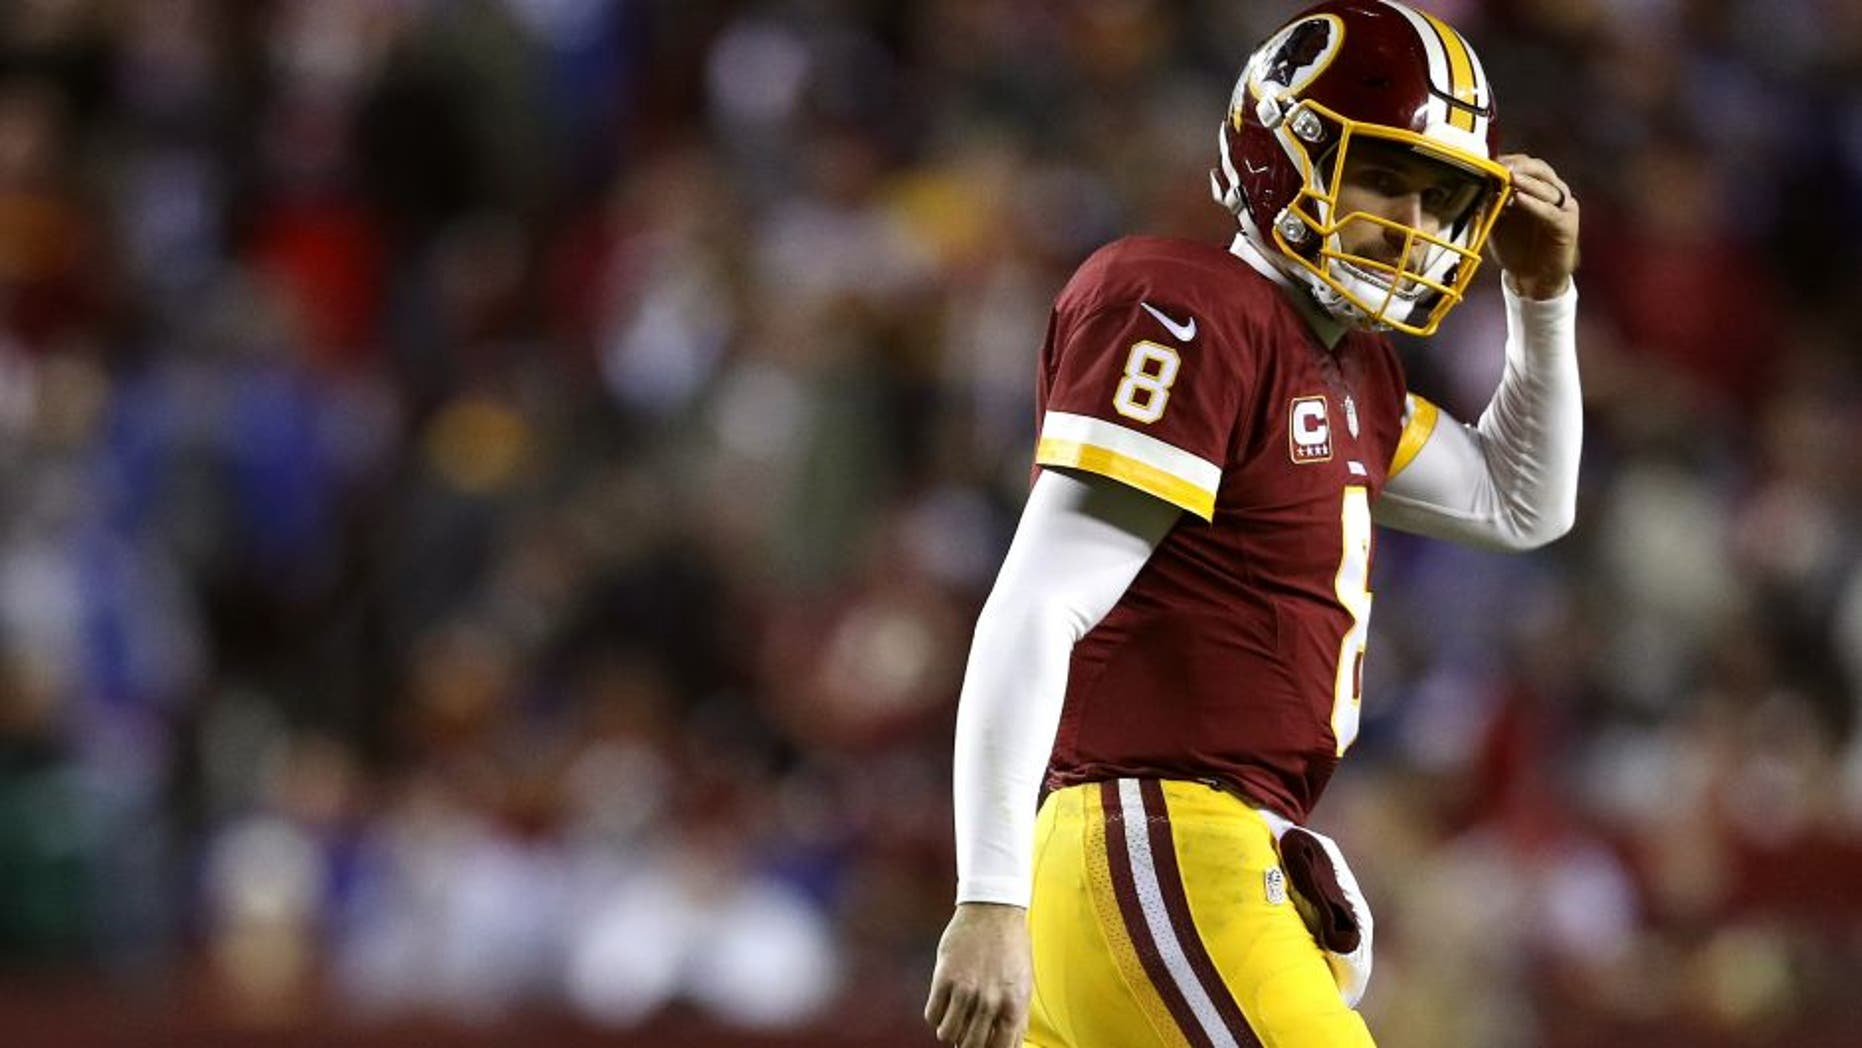 LANDOVER, MD - JANUARY 01: Quarterback Kirk Cousins #8 of the Washington Redskins looks on against the New York Giants in the third quarter at FedExField on January 1, 2017 in Landover, Maryland. (Photo by Patrick Smith/Getty Images)